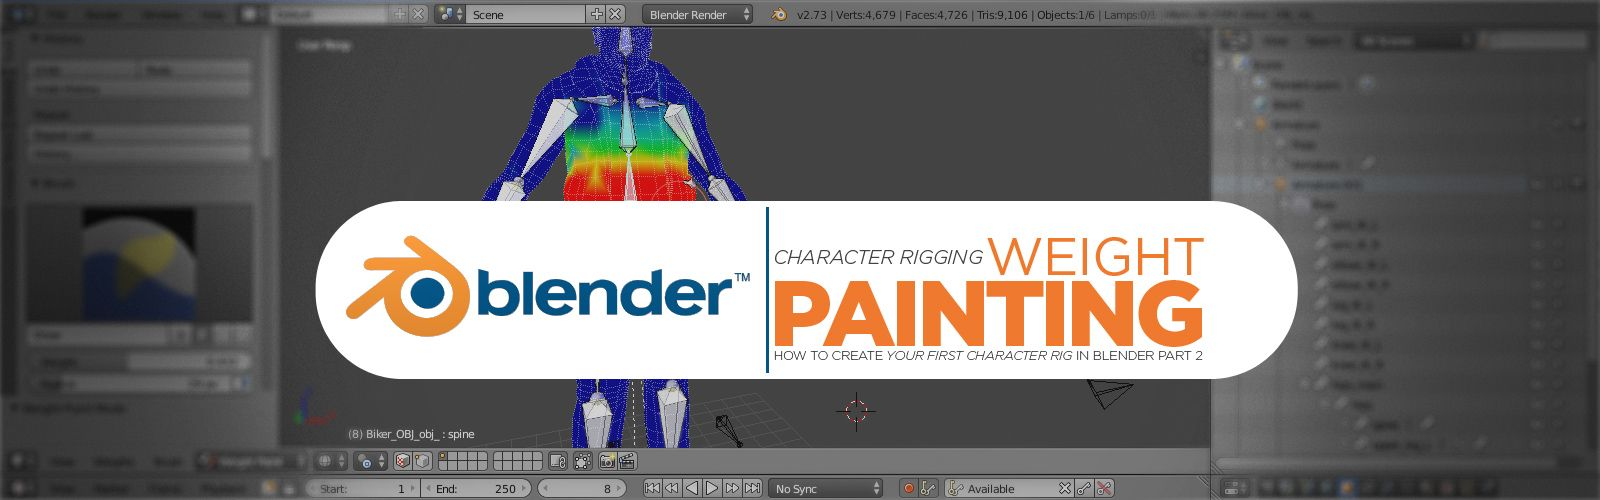 Follow along with us in Part 2 of this rigging a character series and learn about weight painting in Blender!